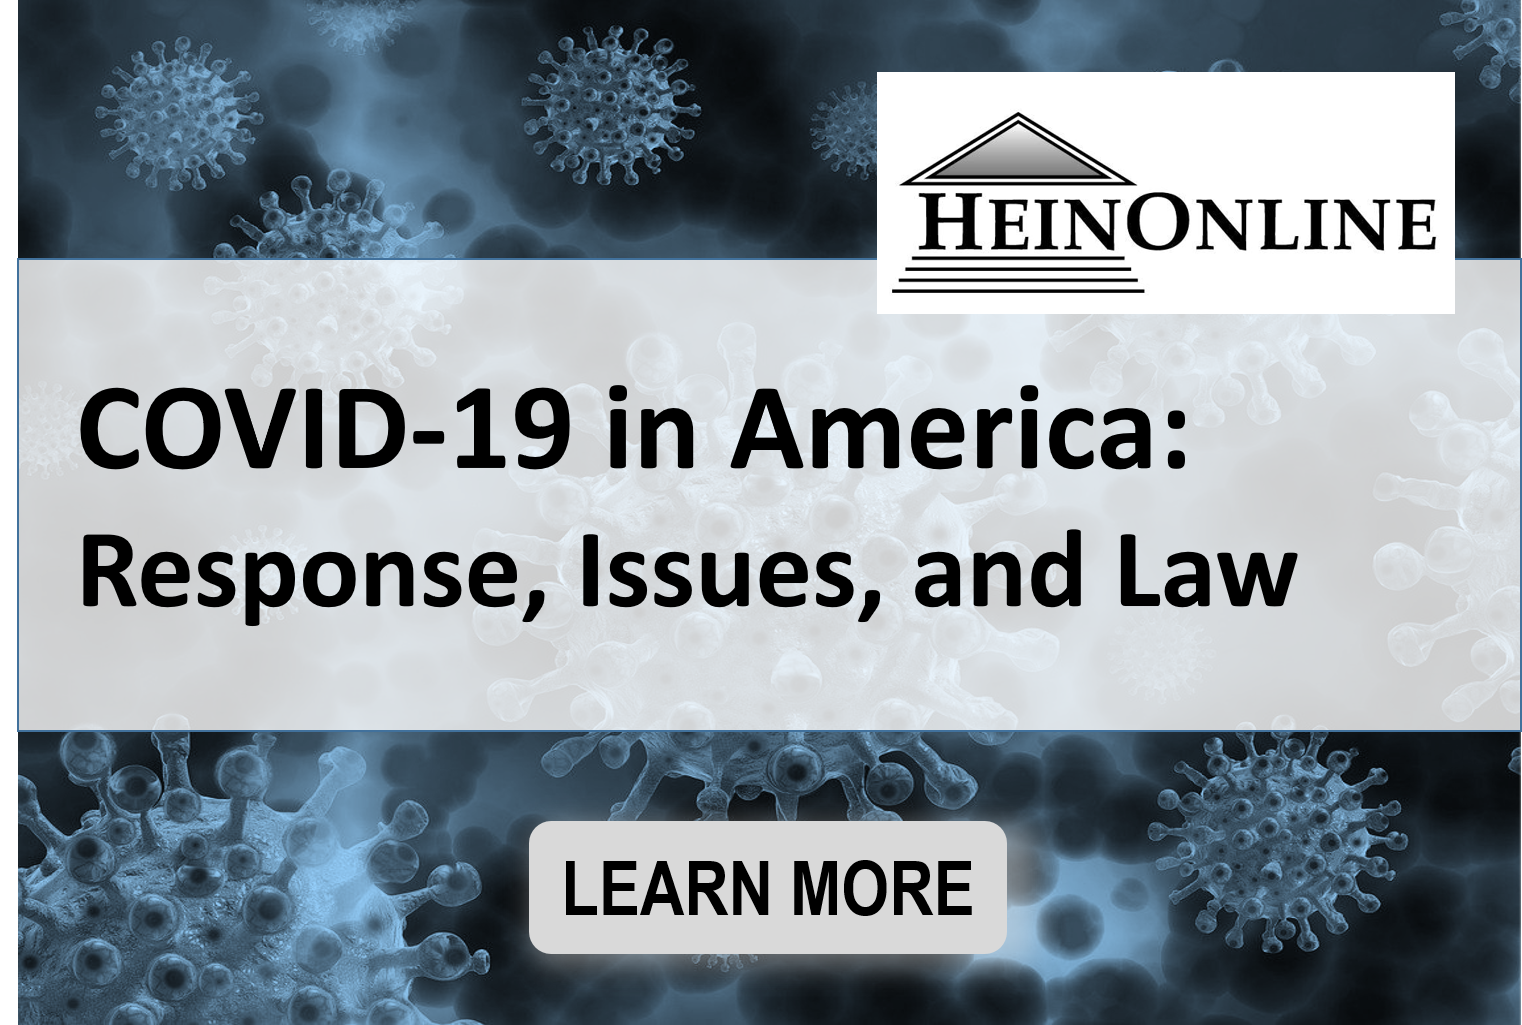 COVID-19 in America: Response, Issues, and Law - HeinOnline Database